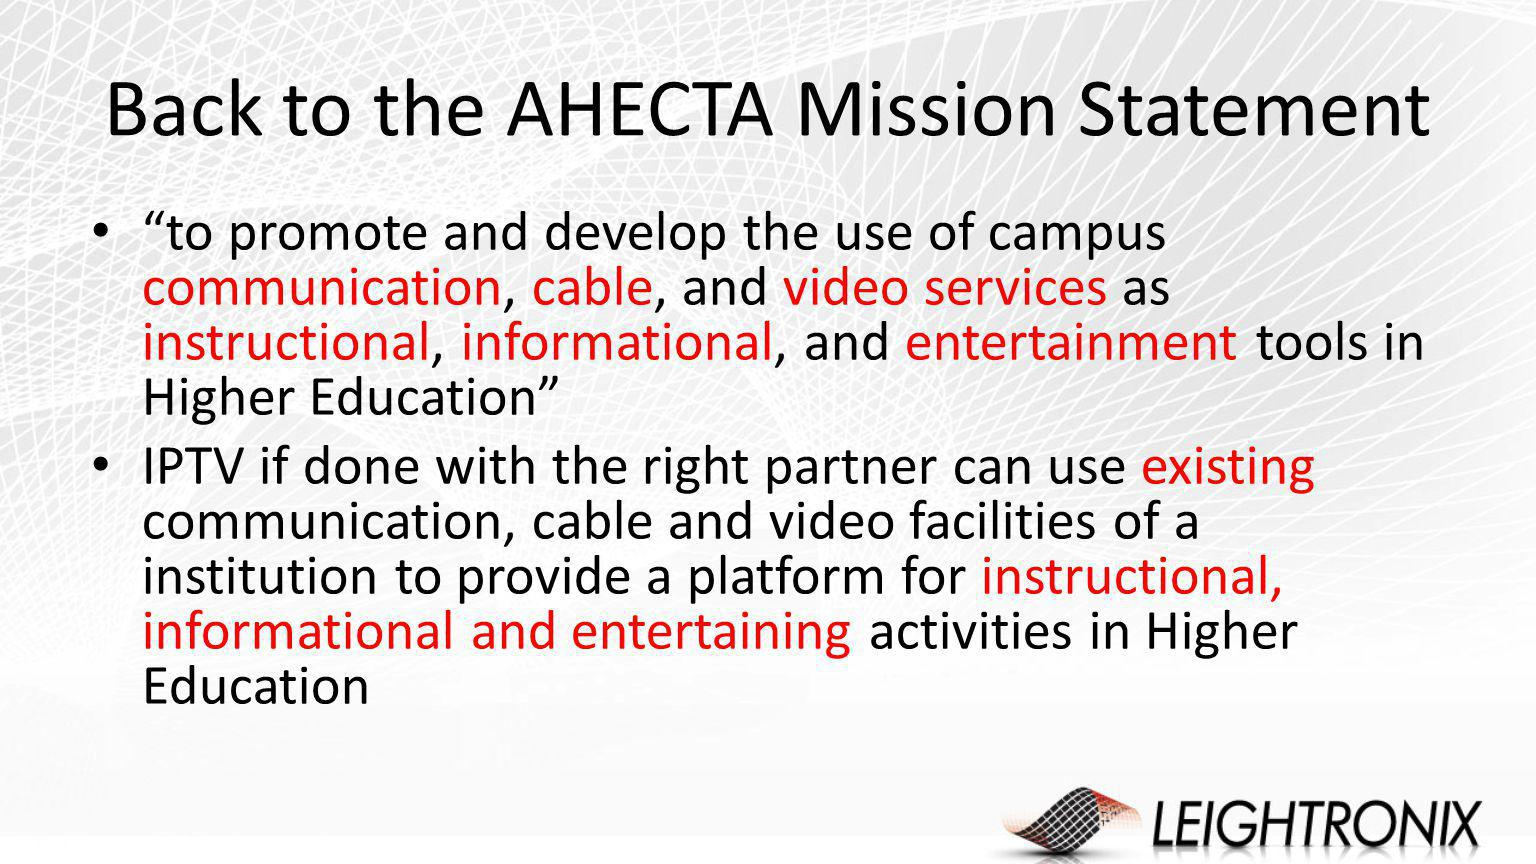 Back to the AHECTA Mission Statement to promote and develop the use of campus communication, cable, and video services as instructional, informational, and entertainment tools in Higher Education IPTV if done with the right partner can use existing communication, cable and video facilities of a institution to provide a platform for instructional, informational and entertaining activities in Higher Education